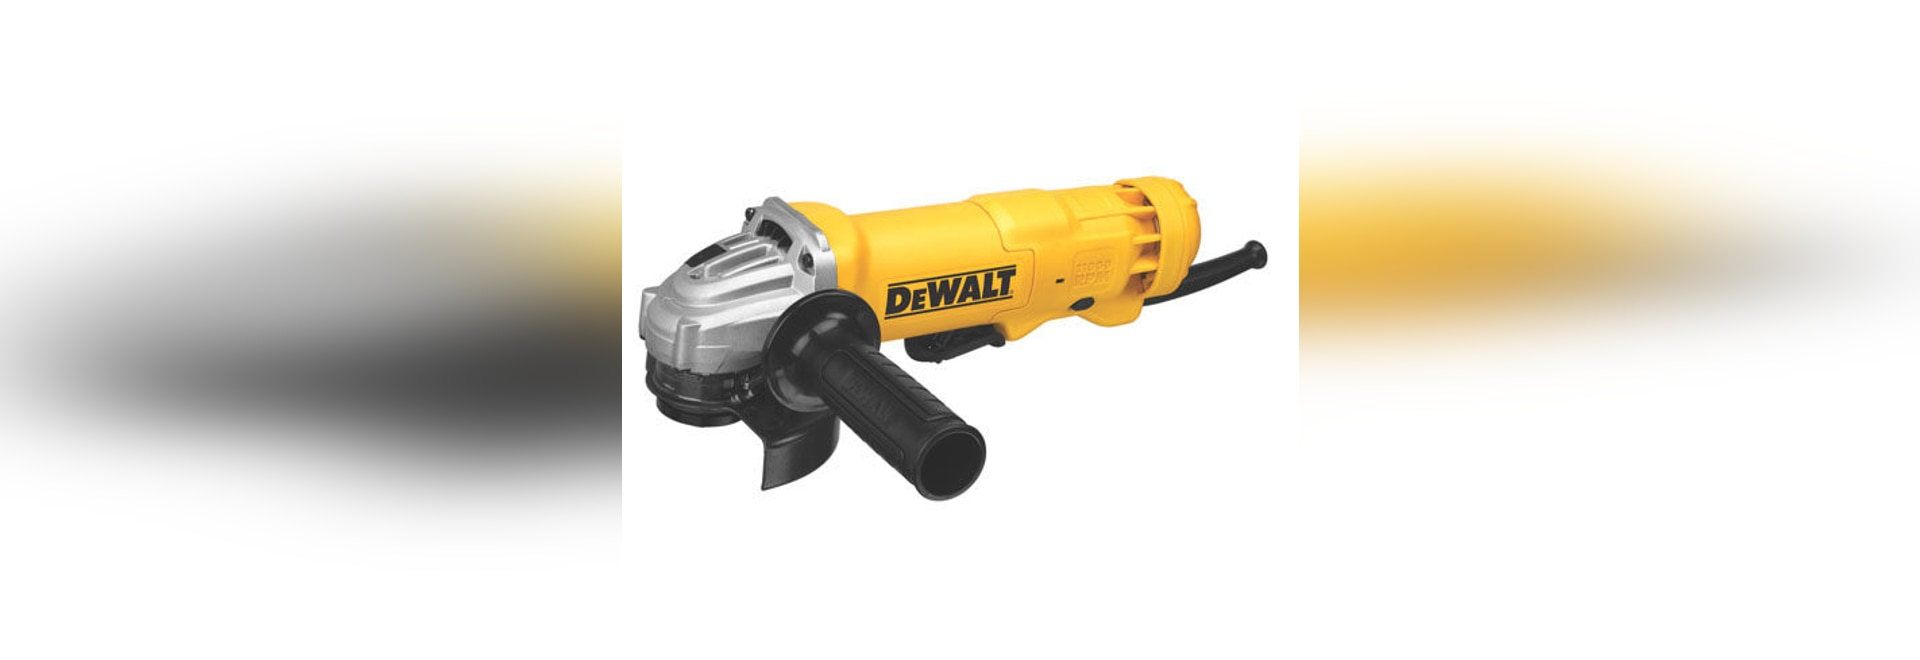 NEW: angle grinder by DEWALT Industrial Tool